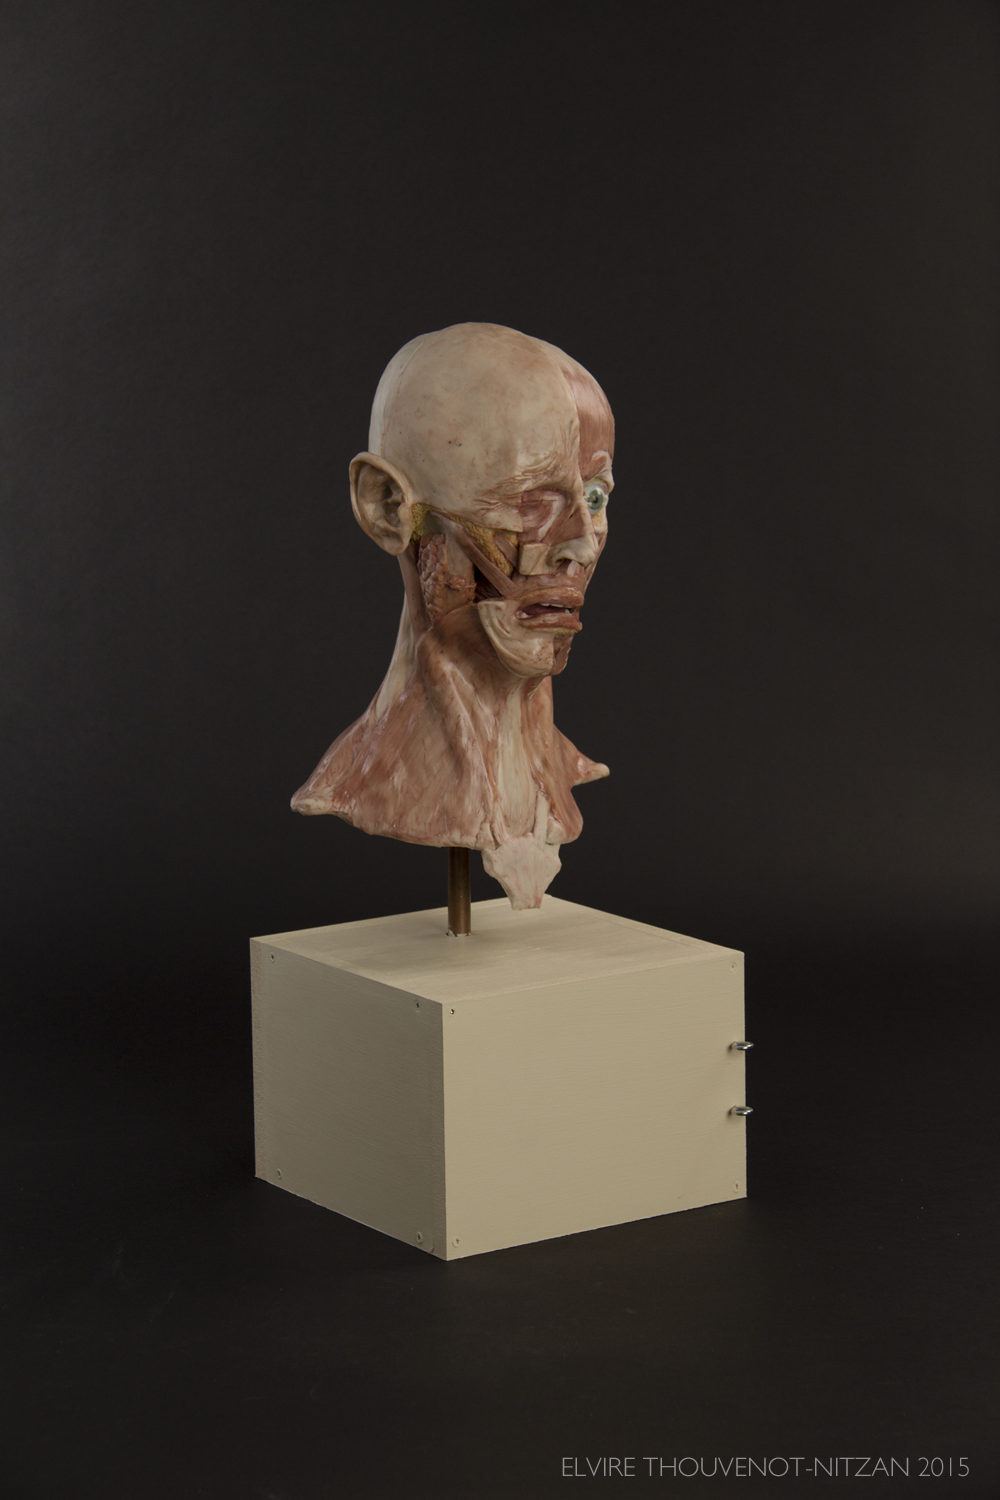 Elvire Thouvenot Anatomical Facial Sculpture 1 copy.png